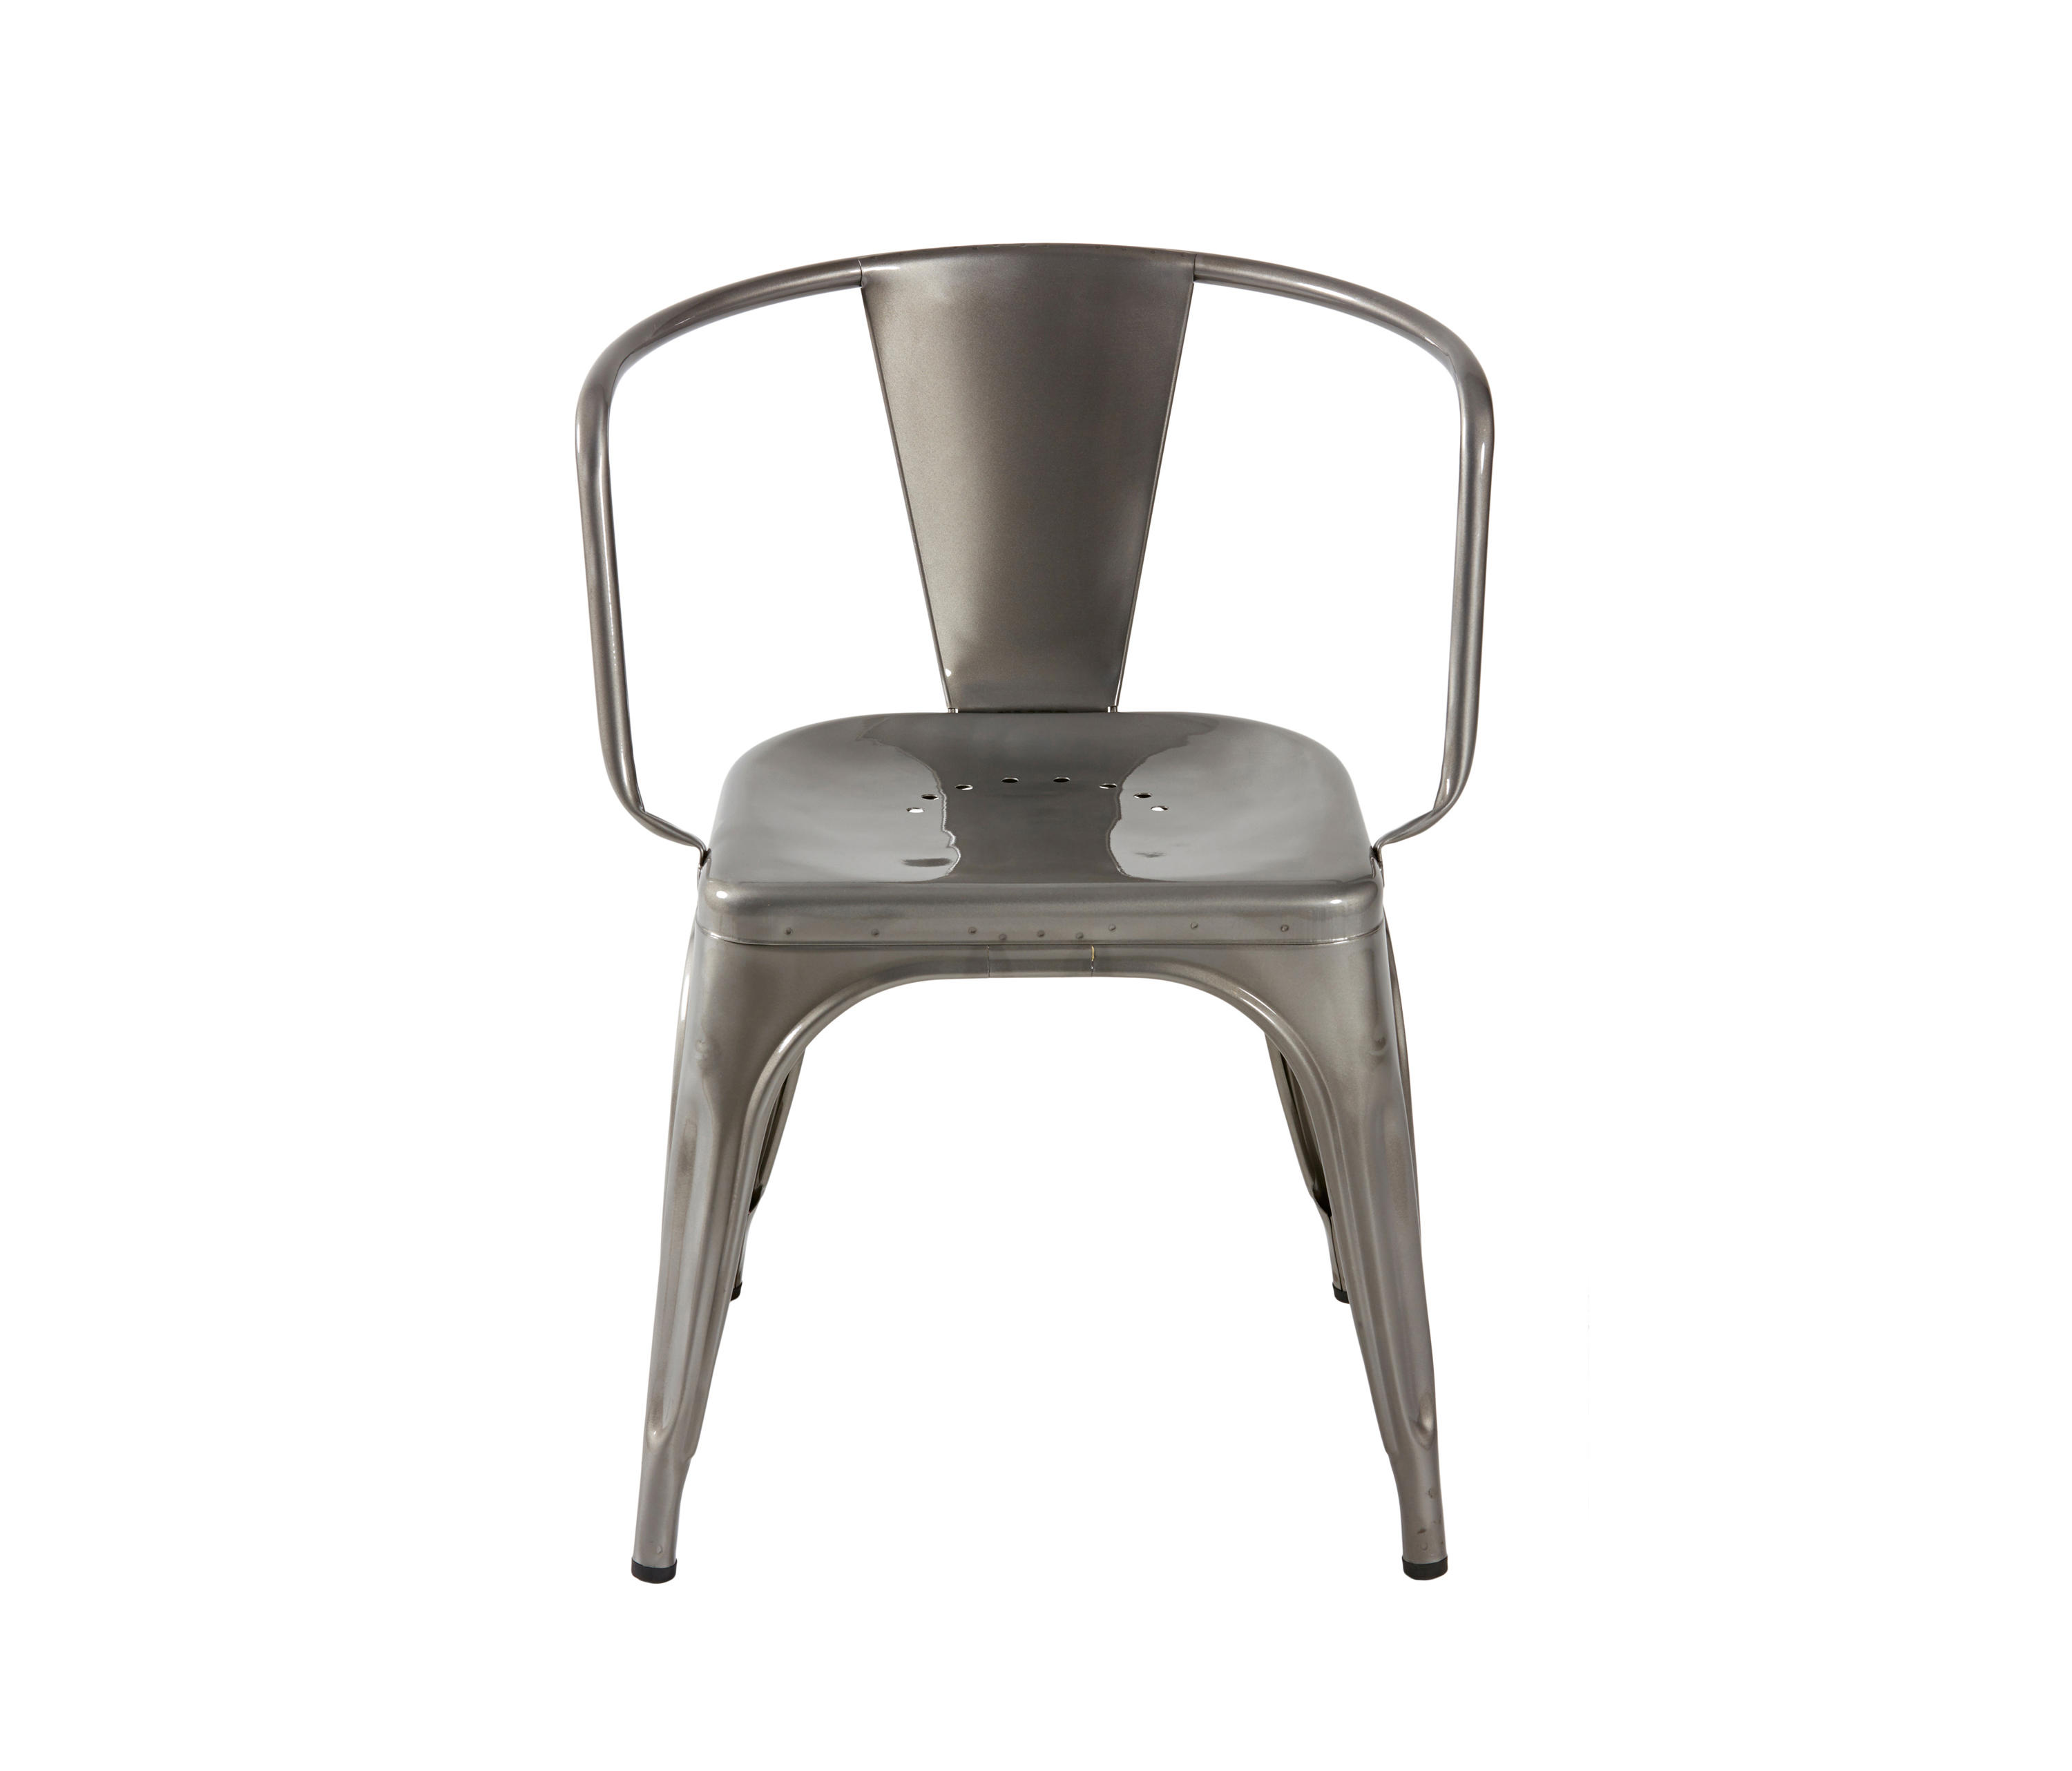 cafe chairs x kitchen di stool chair pauchard metal tolix bar products home replica industrial xavier steel dining